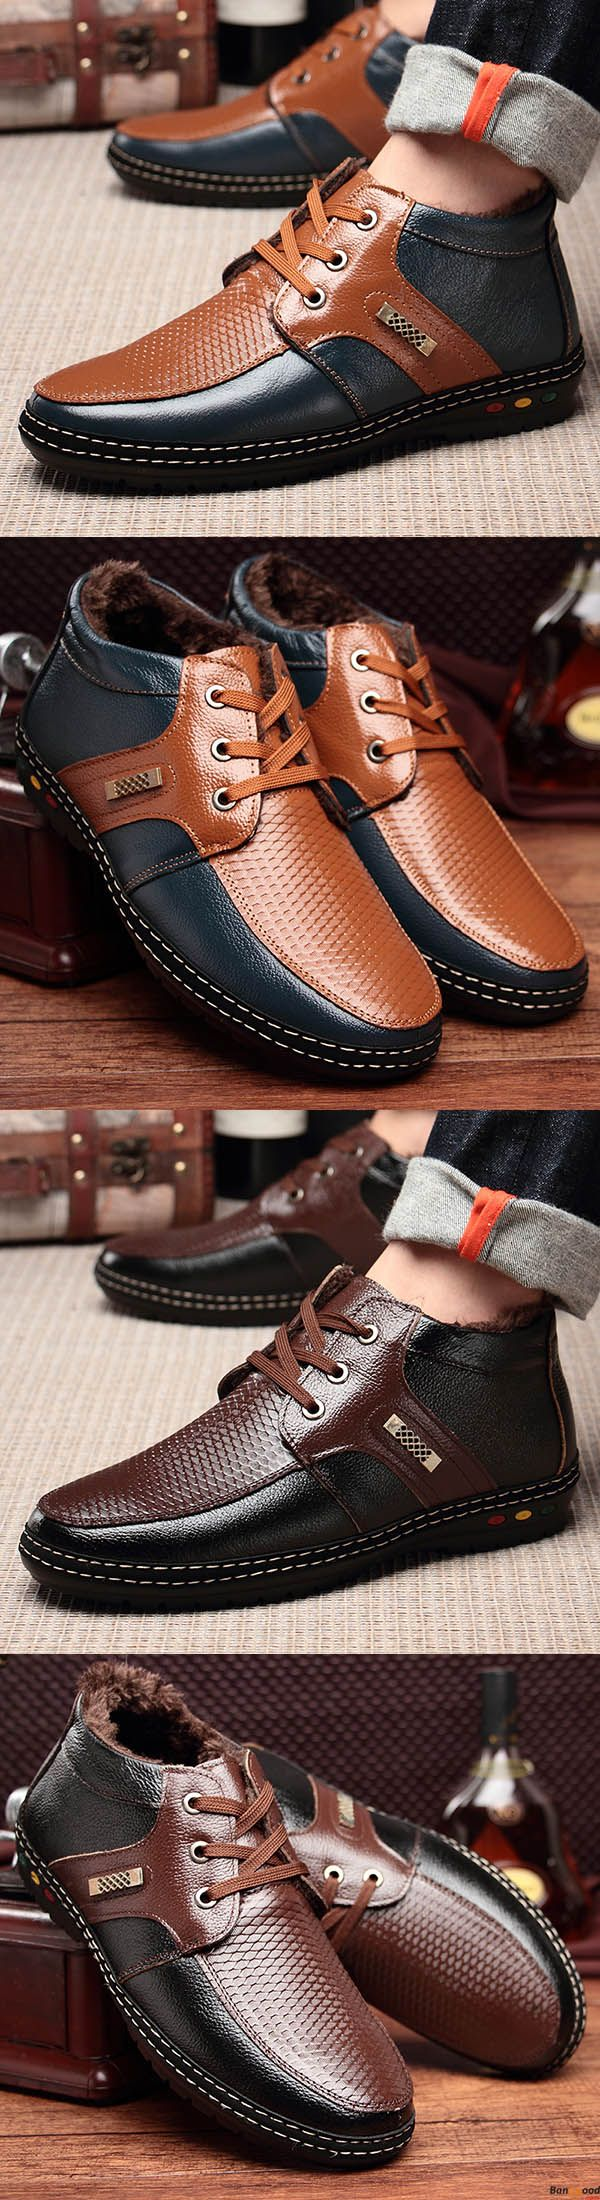 US$42.99+ Free Shipping. Men Casual Genuine Leather Comfy Soft Fur Lining High Top Oxfords Shoes. Mens comfy style. Warm and chic. Shop at banggood now.